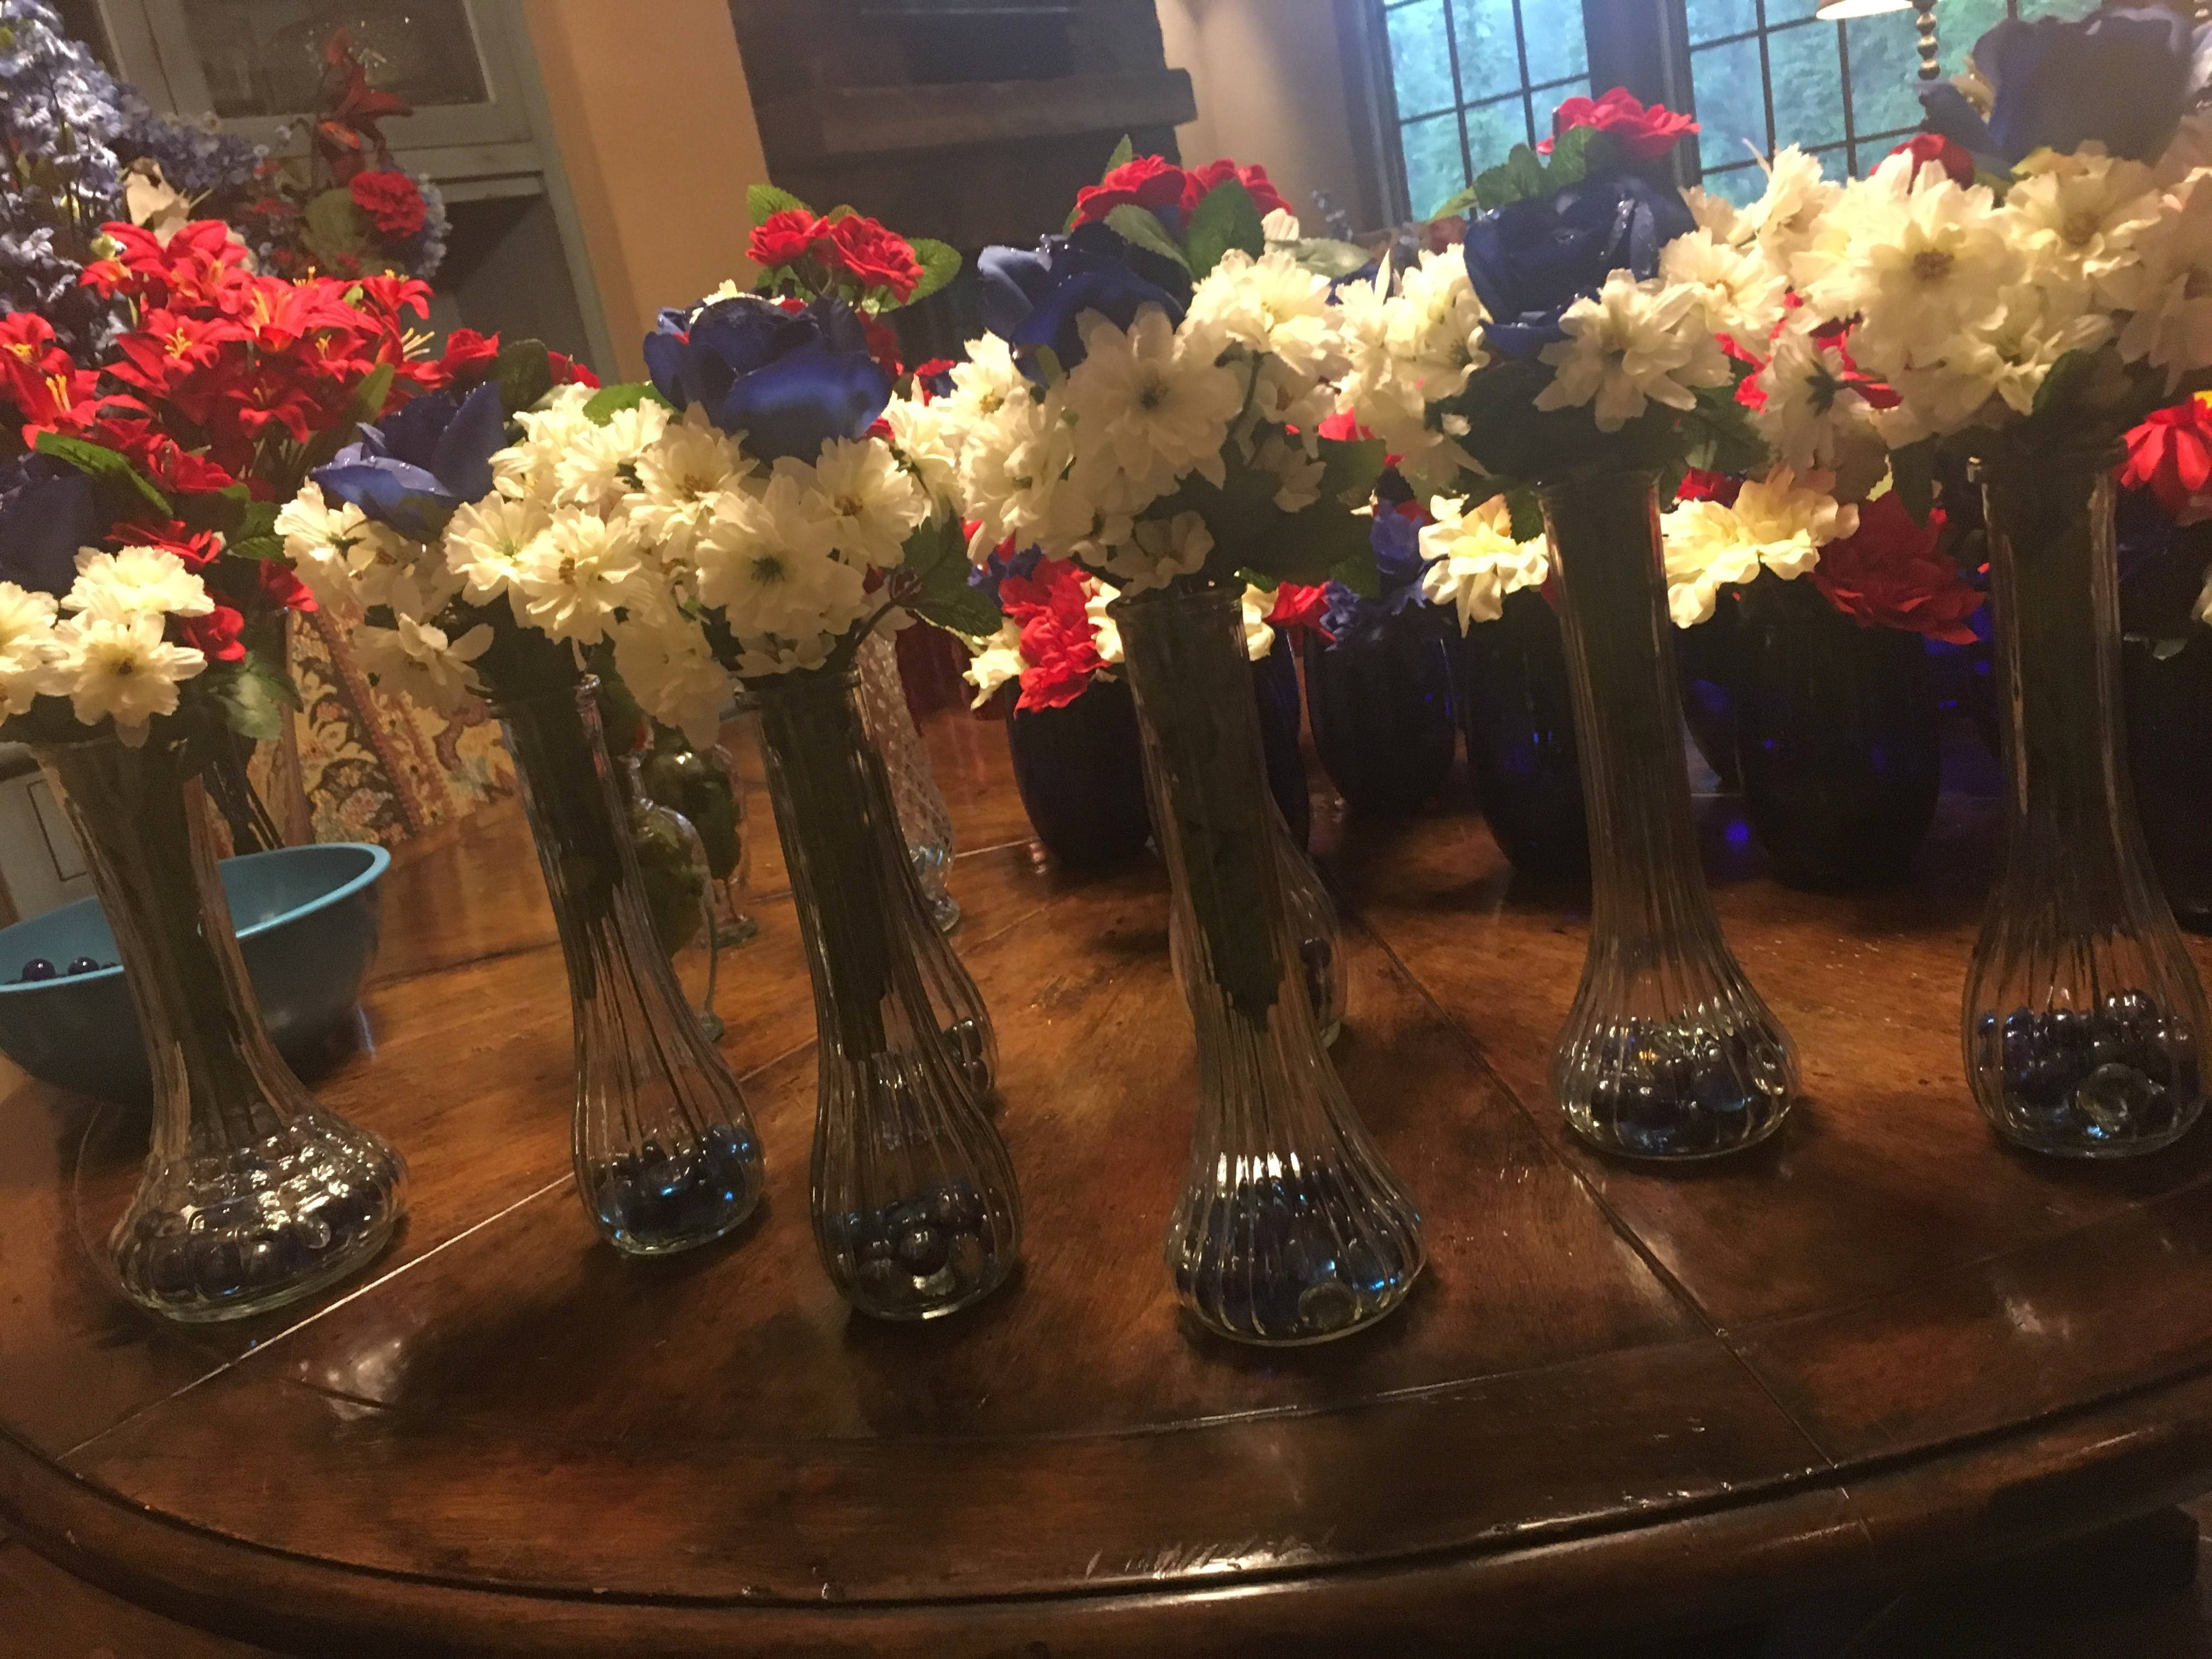 Orchid with Vase Of Tables at Wedding Receptions Fresh Dollar Tree Wedding Decorations for Tables at Wedding Receptions Fresh Dollar Tree Wedding Decorations Awesome H Vases Dollar Vase I 0d